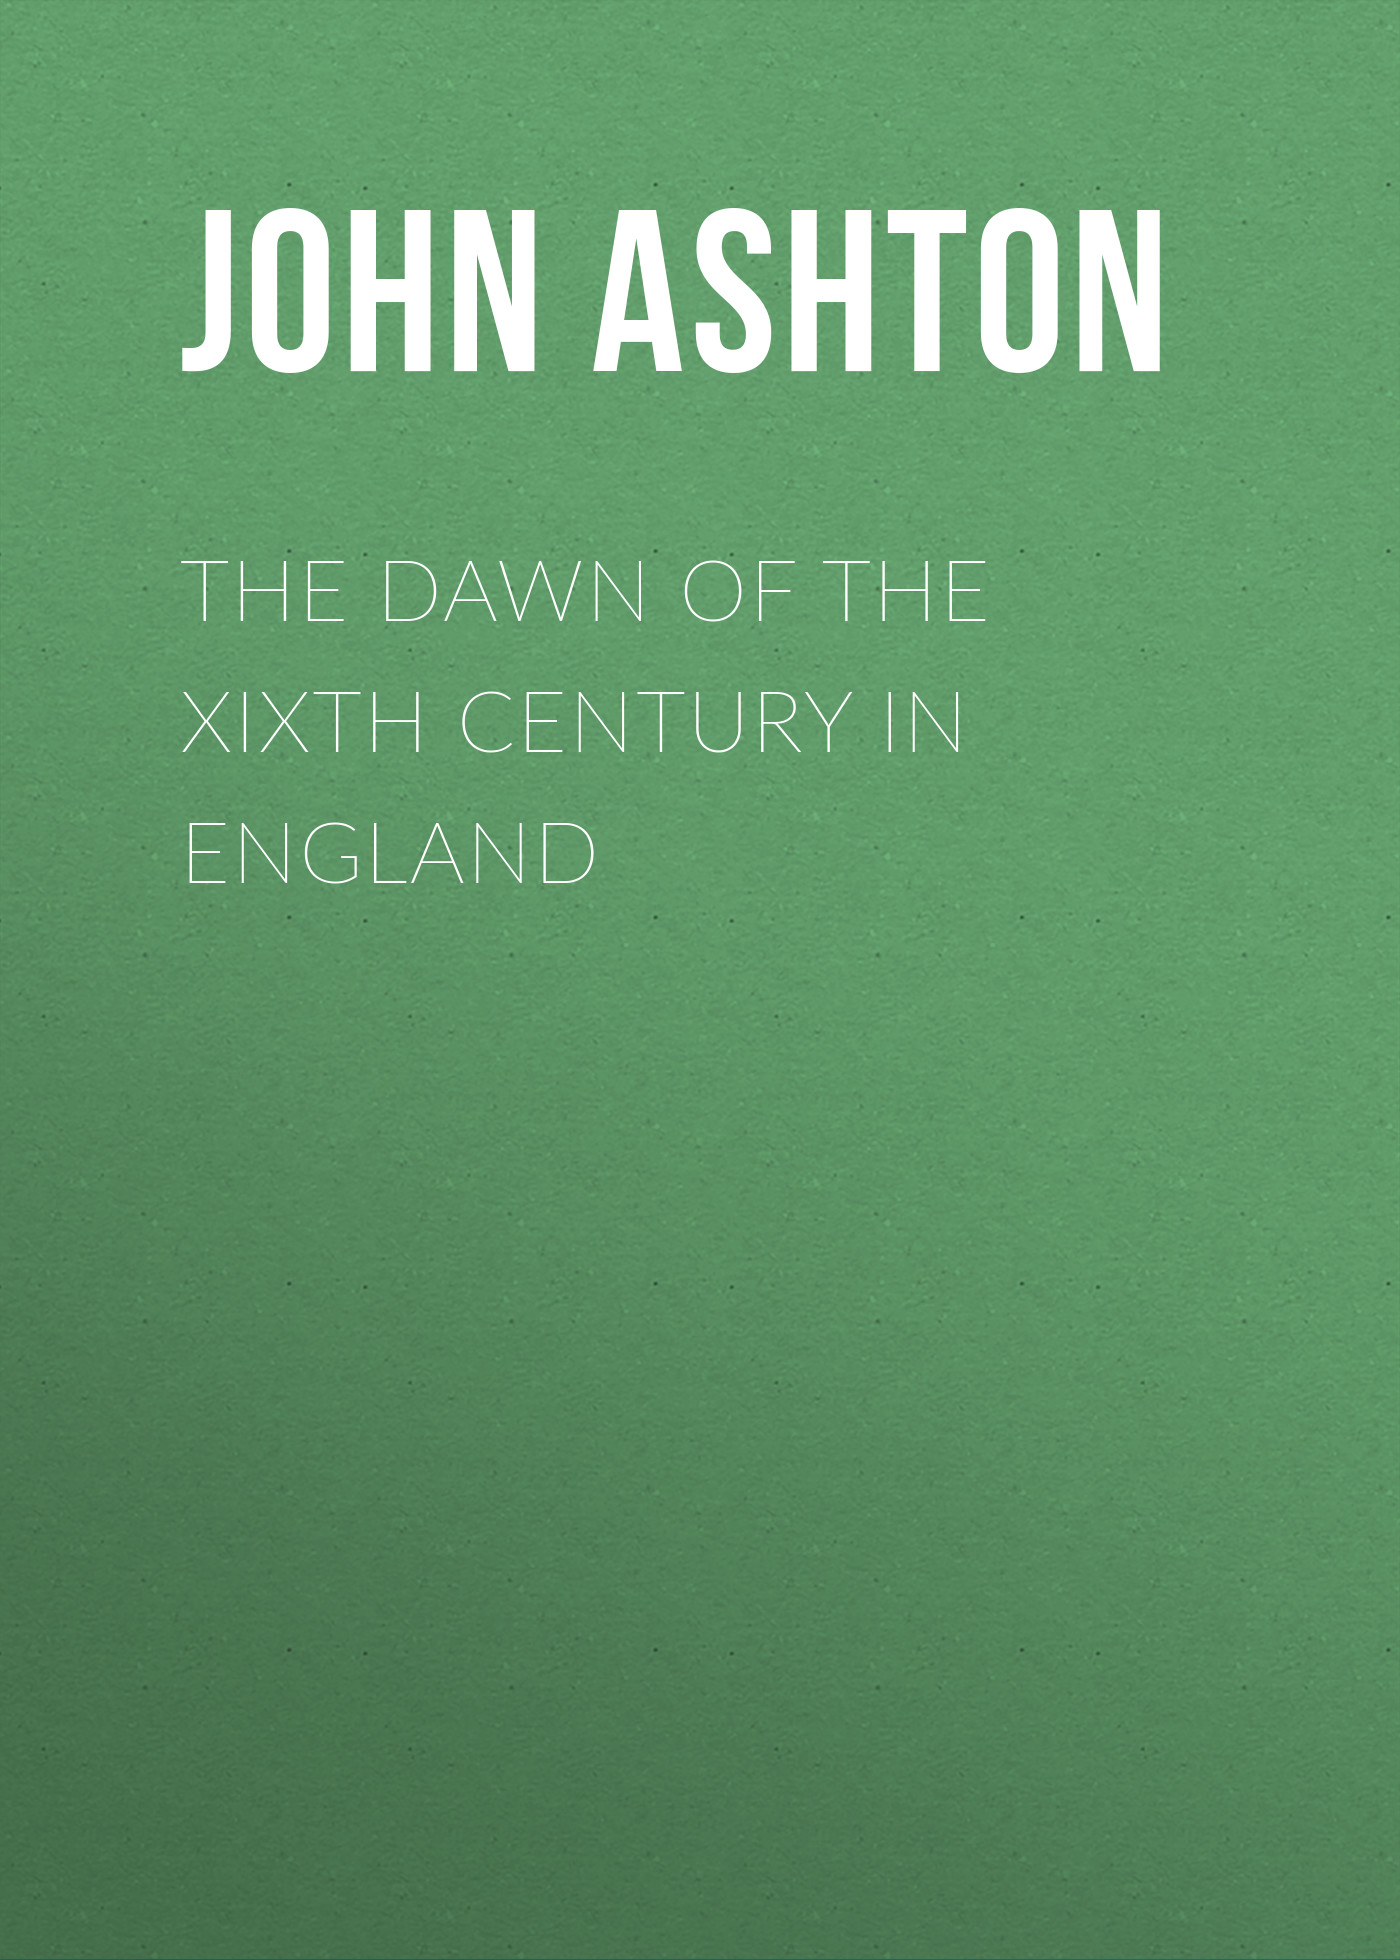 Ashton John The Dawn of the XIXth Century in England ashton john the dawn of the xixth century in england